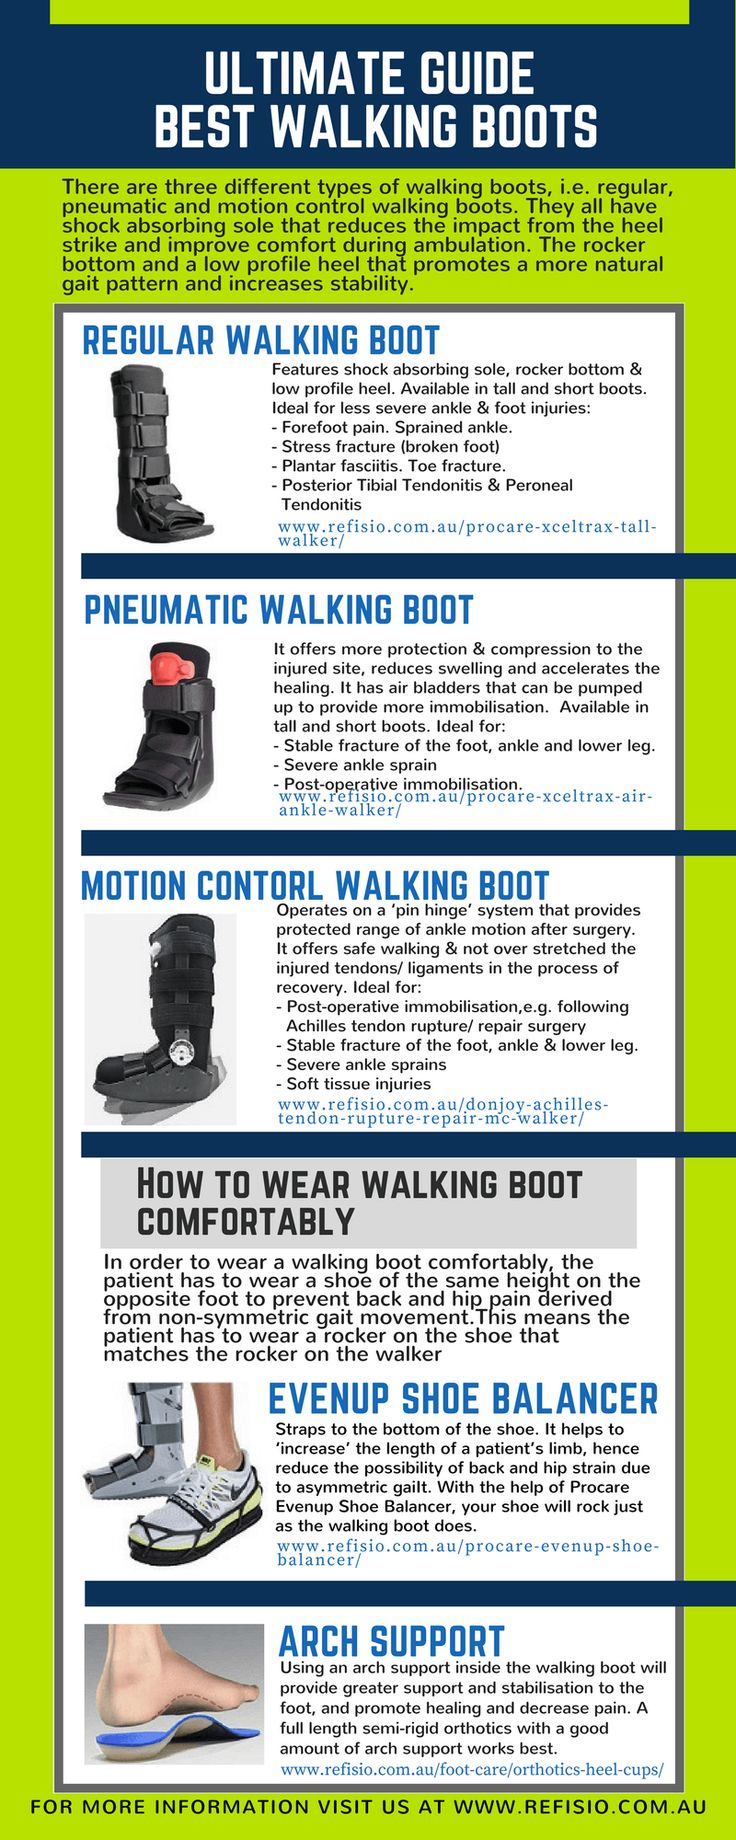 Details guide on how to choose the right walker/ walking boot/ cast walker for your foot and ankle injuries.